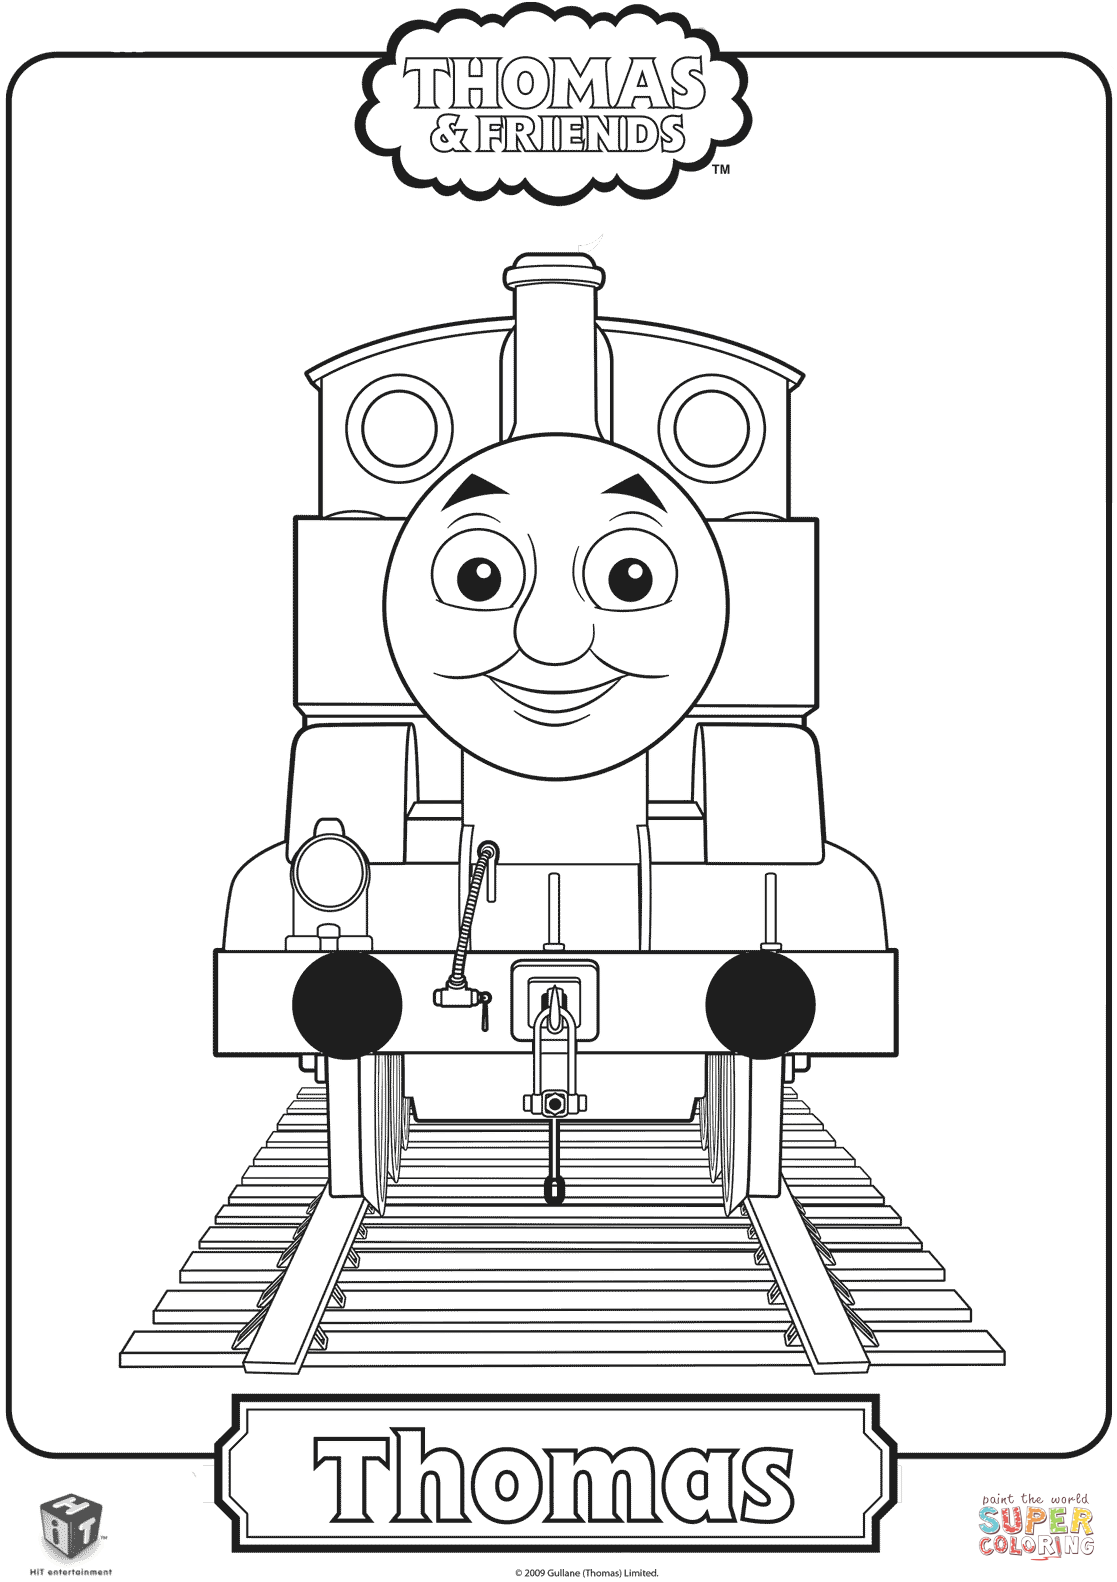 thomas and his friends coloring pages edward thomas and friends coloring pages coloring pages and thomas his coloring friends pages